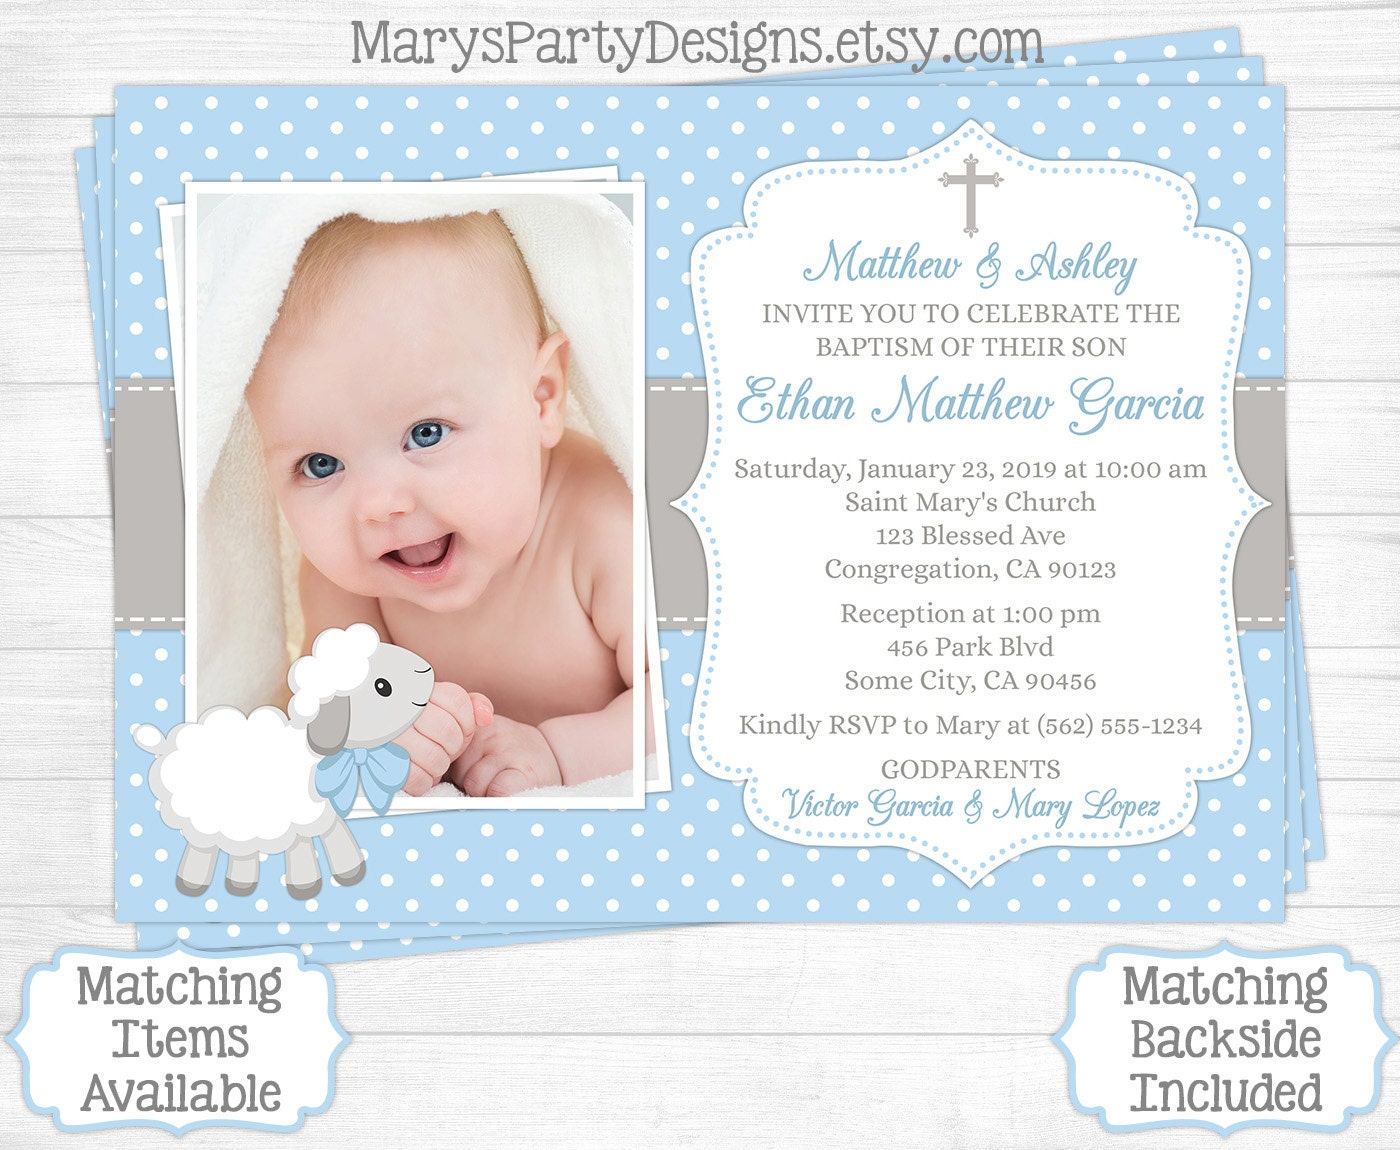 Sample Of Invitation Card For Christening And 1st Birthday.  zoom Lamb Baptism Invitation Boy First 1st Birthday Christening